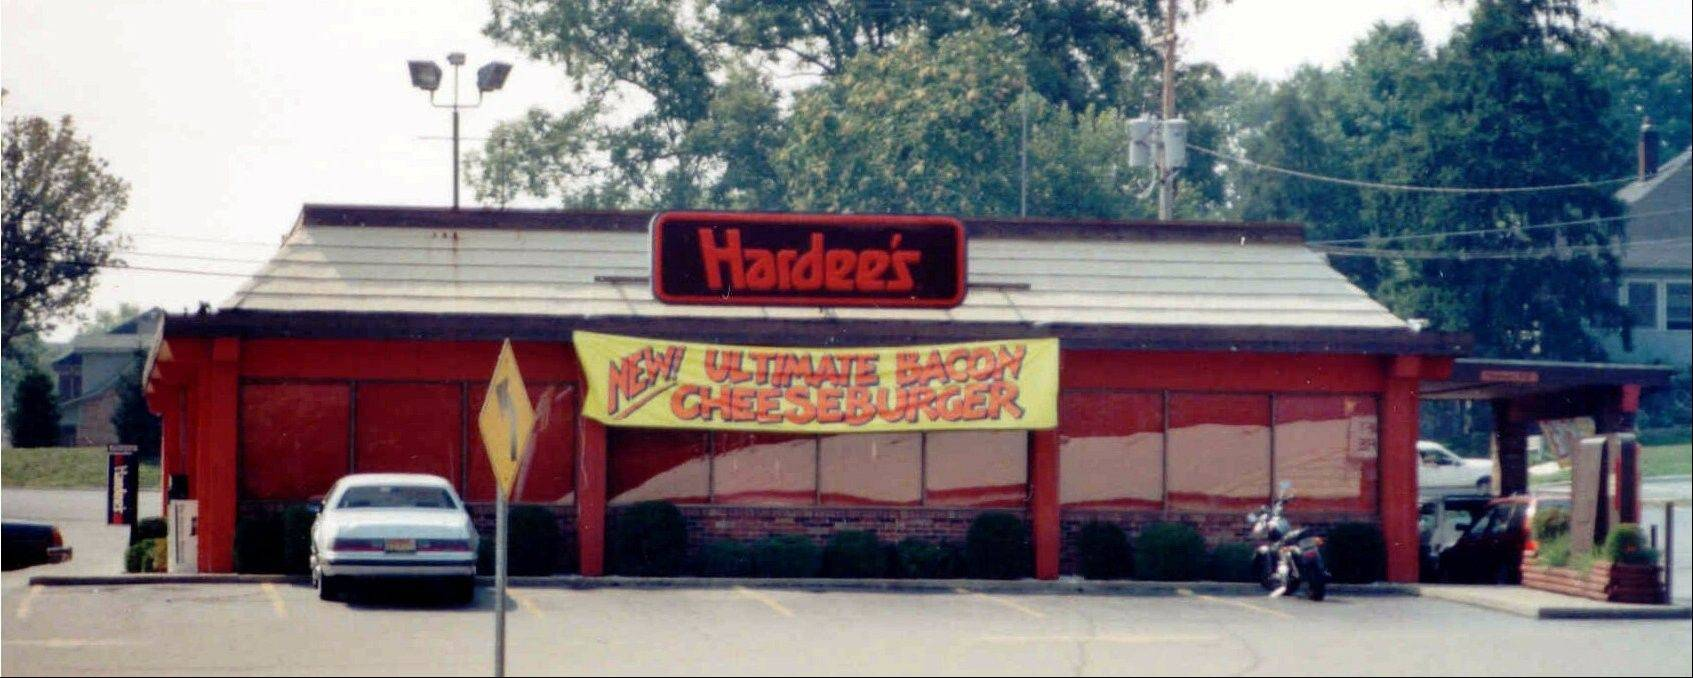 Days after announcing an expansion into the Northeast, Hardee's is also adding restaurants in the Chicago area including one in Elk Grove Village.